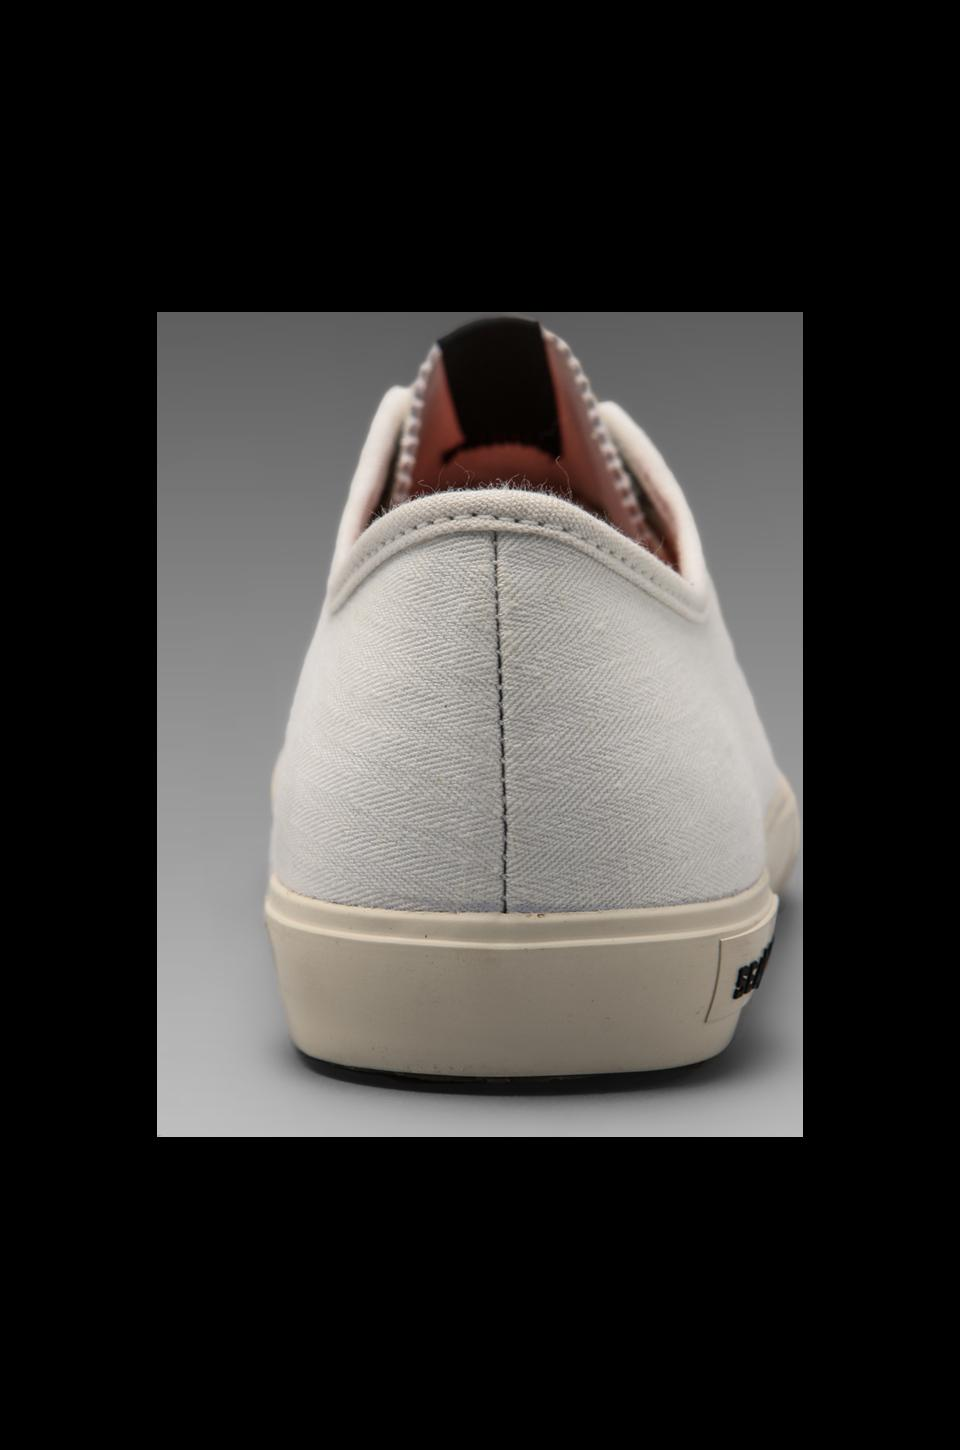 SeaVees x Todd Snyder Army Issue Low Top in Natural Herringbone